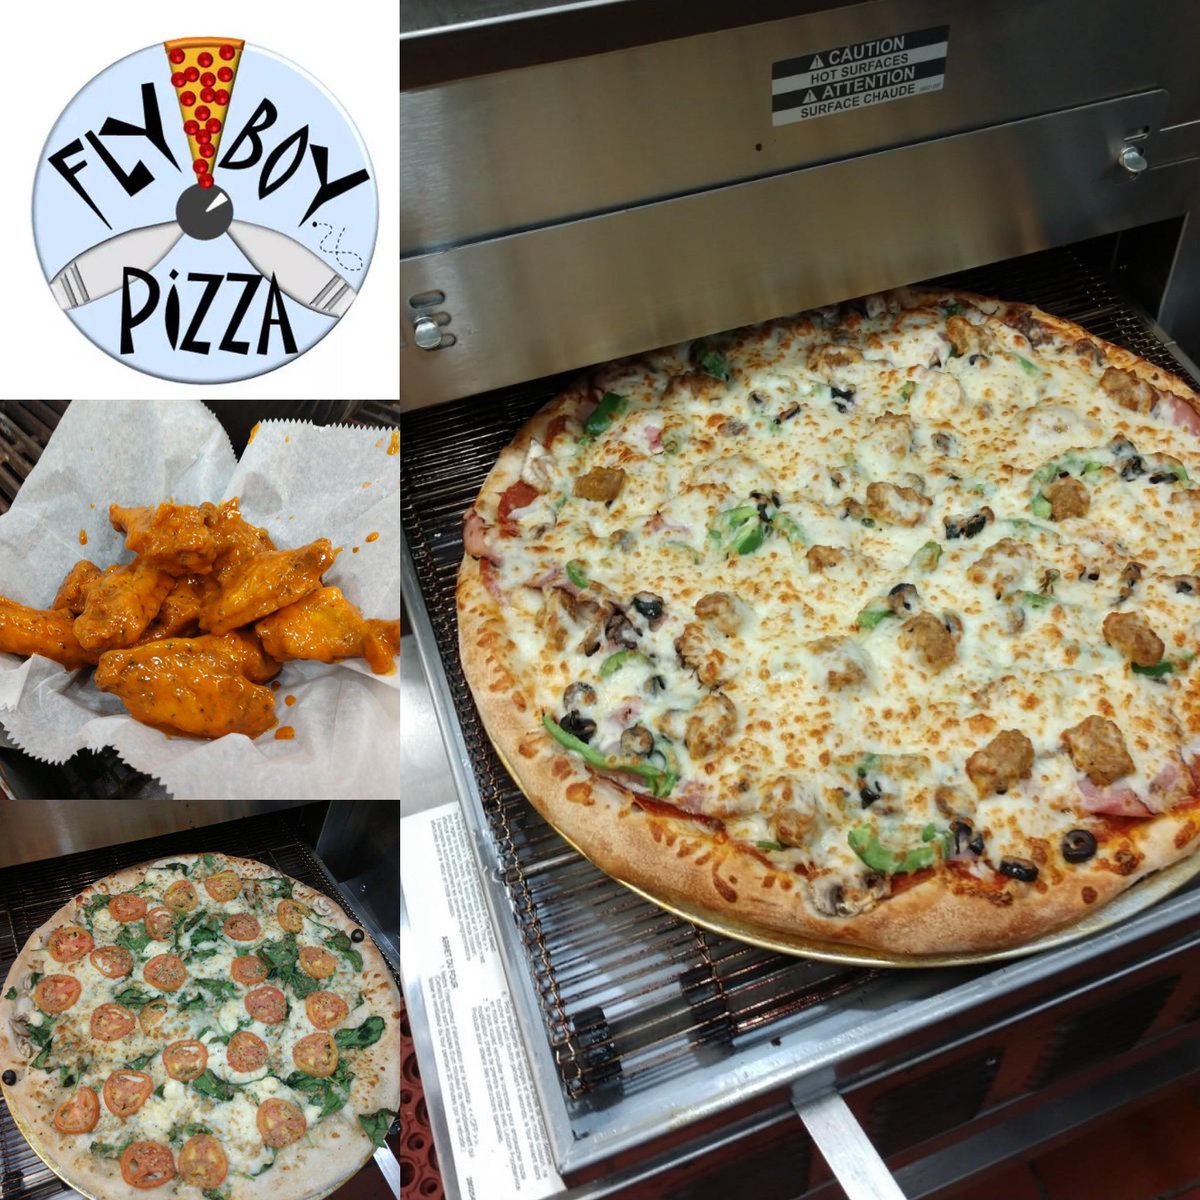 Under the direction of Pizza Master Tony Pereira, Flyboy pizza is set to open on Wednesday, January 13th from 11 am -9 pm serving up a fresh selection of pizza creations, salads, and wings!  Check out their Online Menu and ordering here